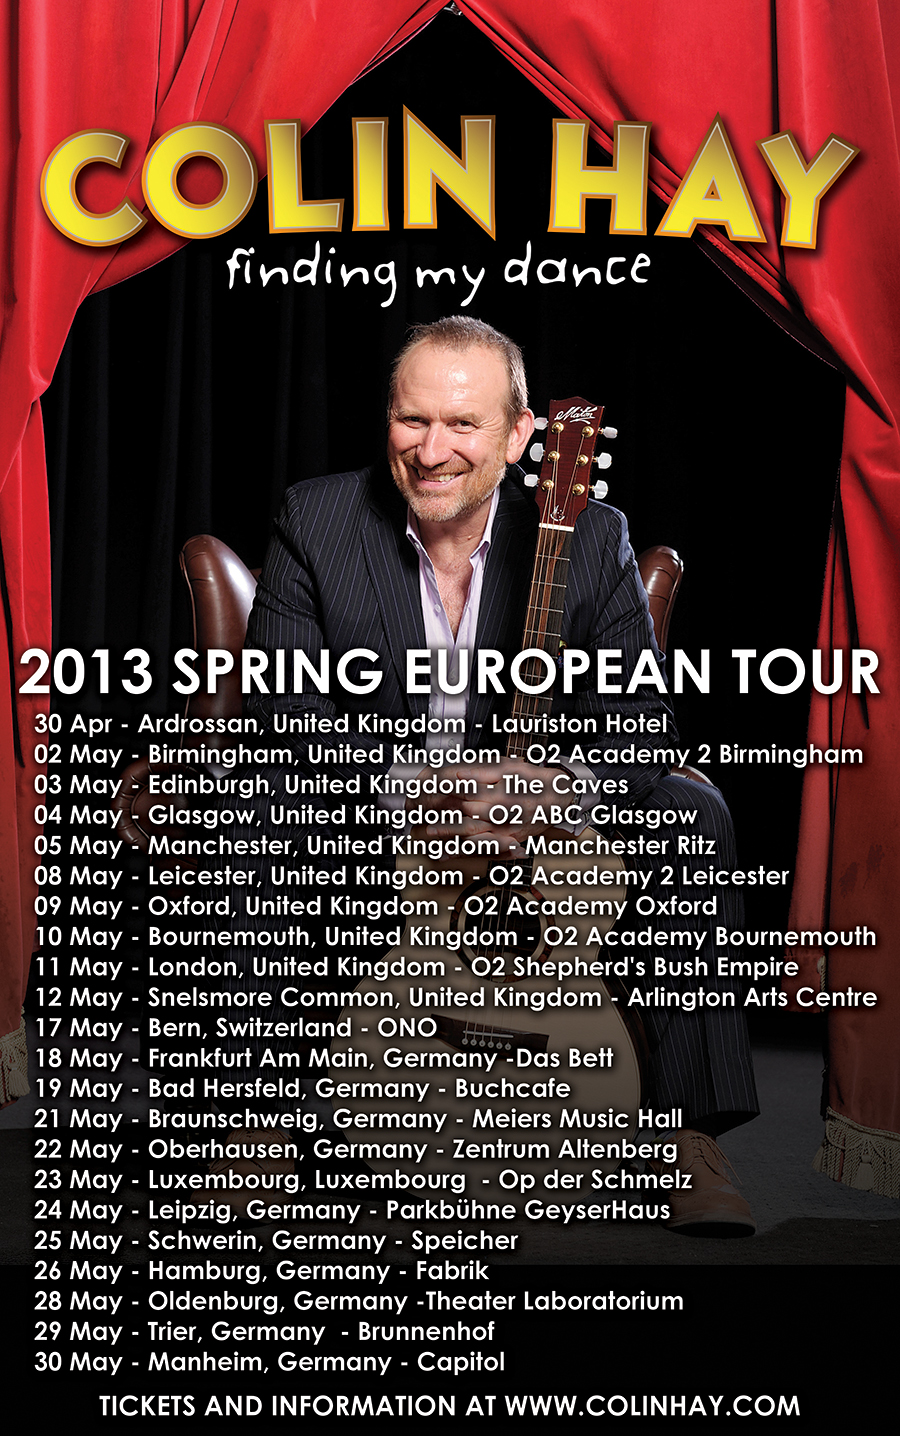 Colin_Hay_Spring2013Europe_graphic